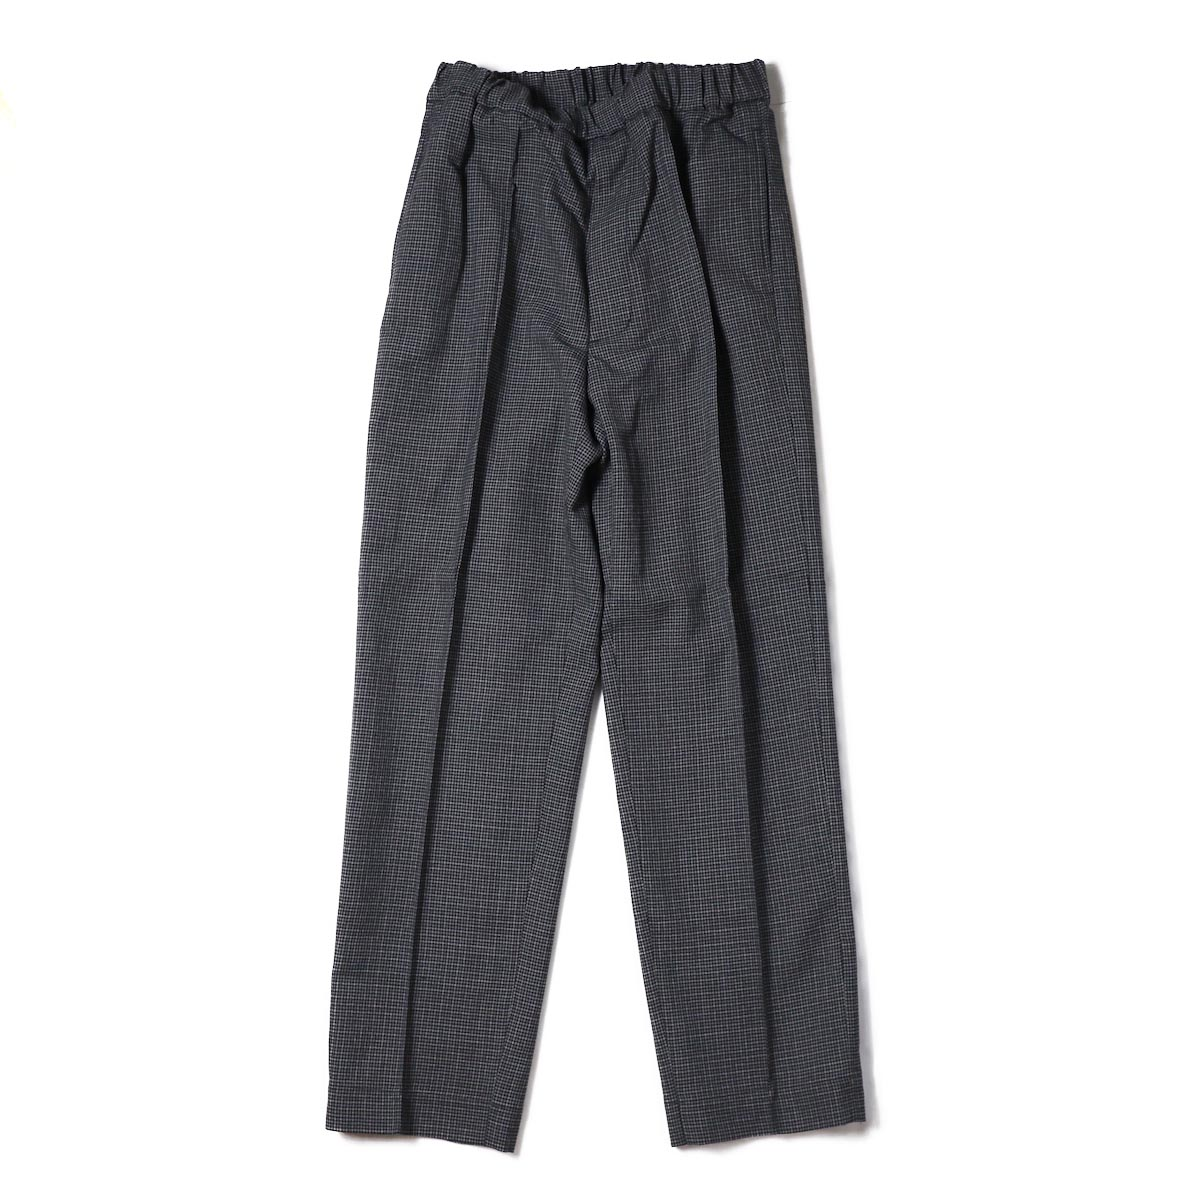 Kaptain Sunshine / Crease Tucked Easy Pants -Grey Hound's Tooth